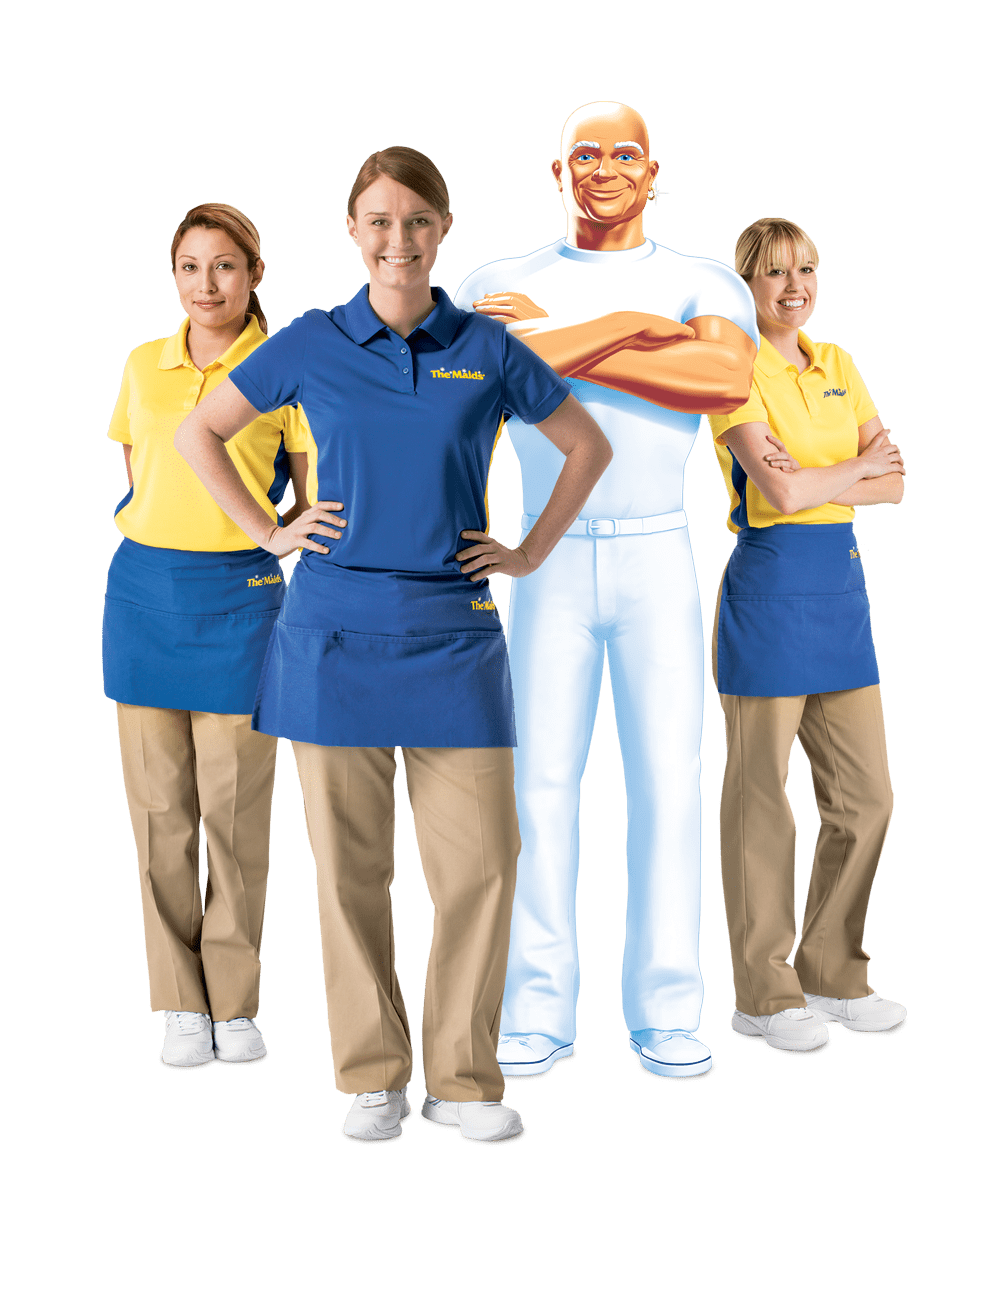 The Maids House Cleaning - The Maids in Southern Montgomery County Home Cleaning